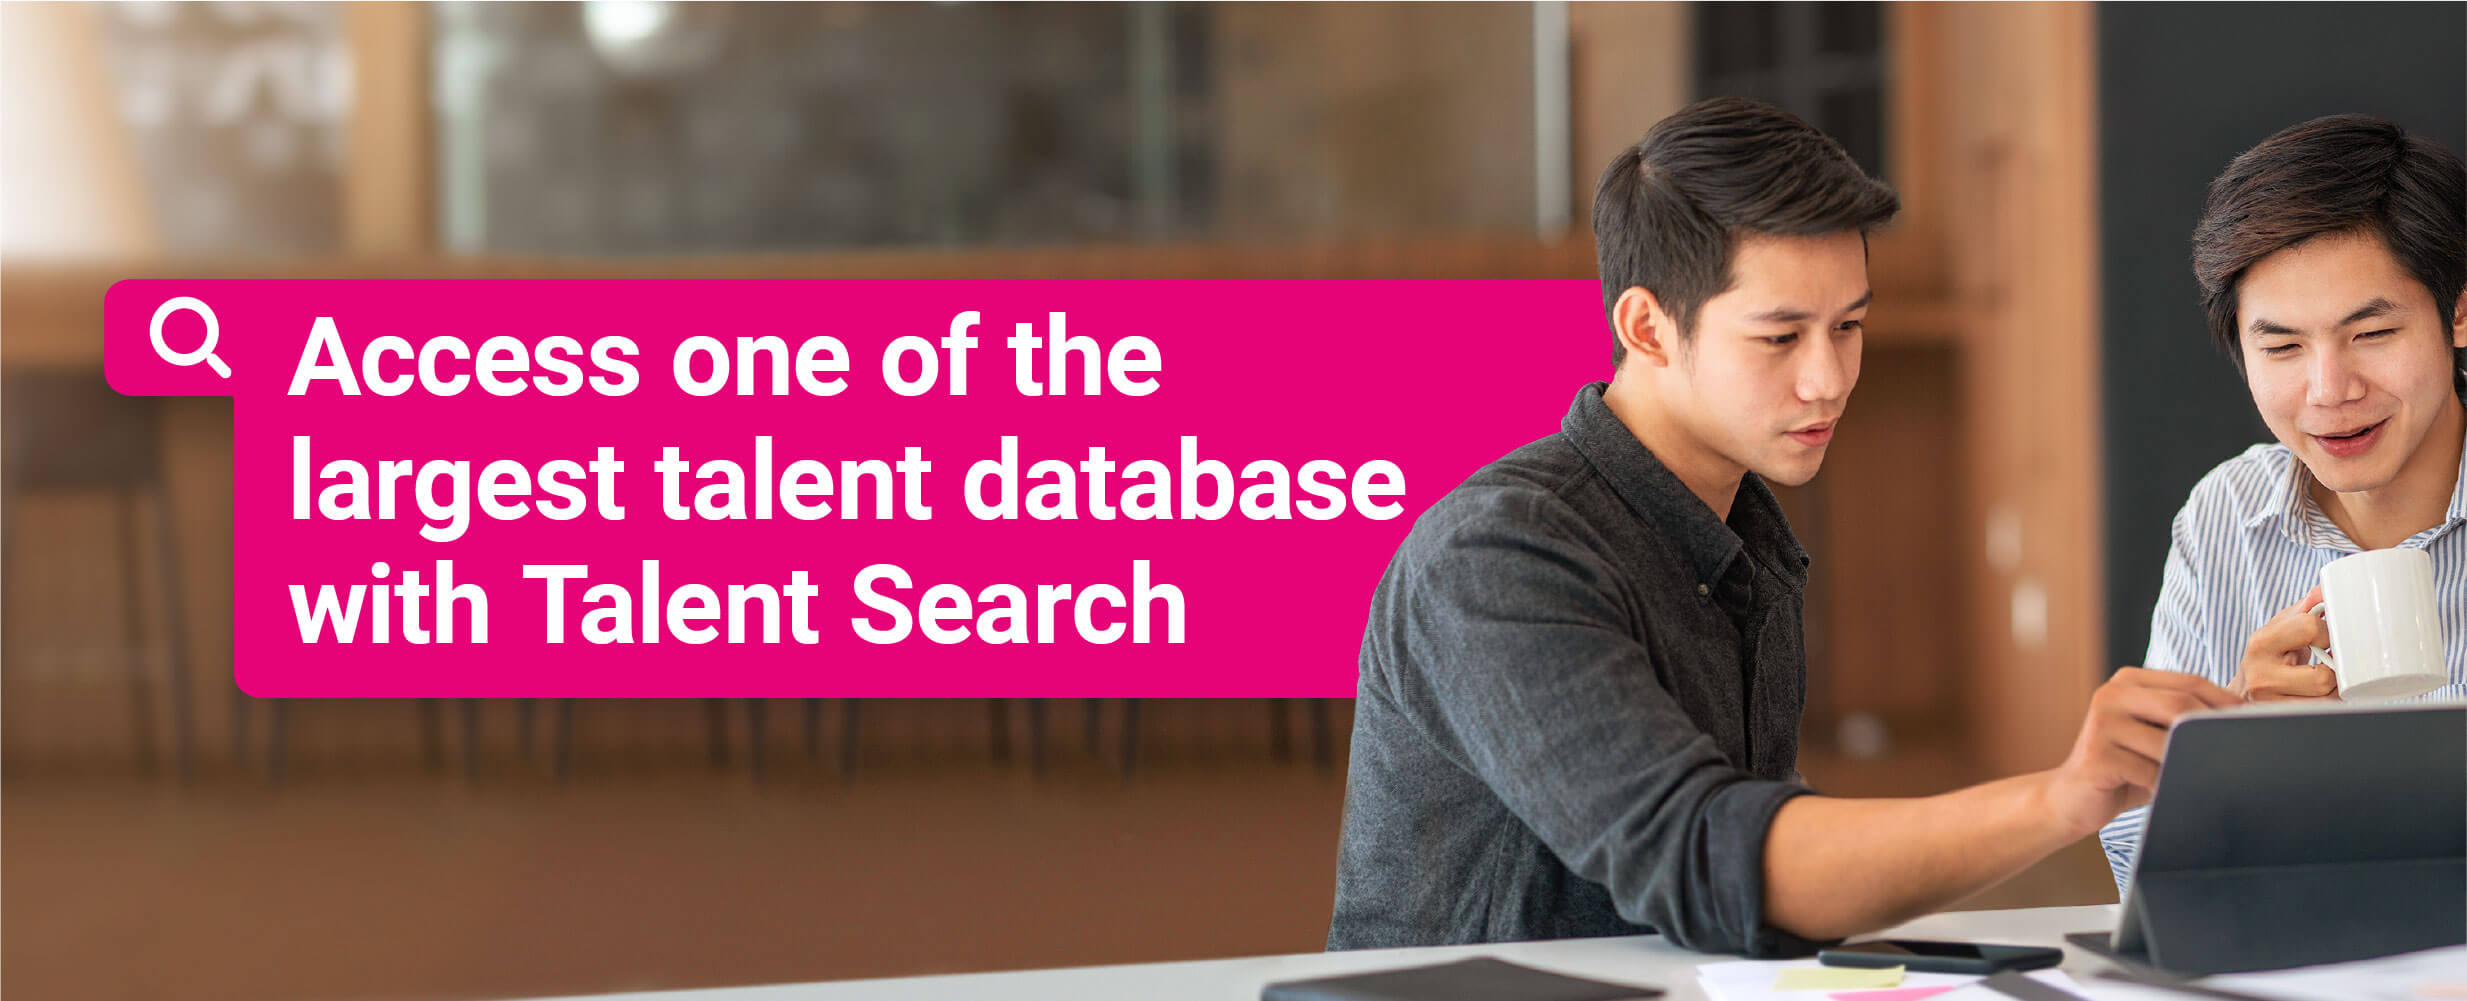 Access one of the largest talent database with Talent Search